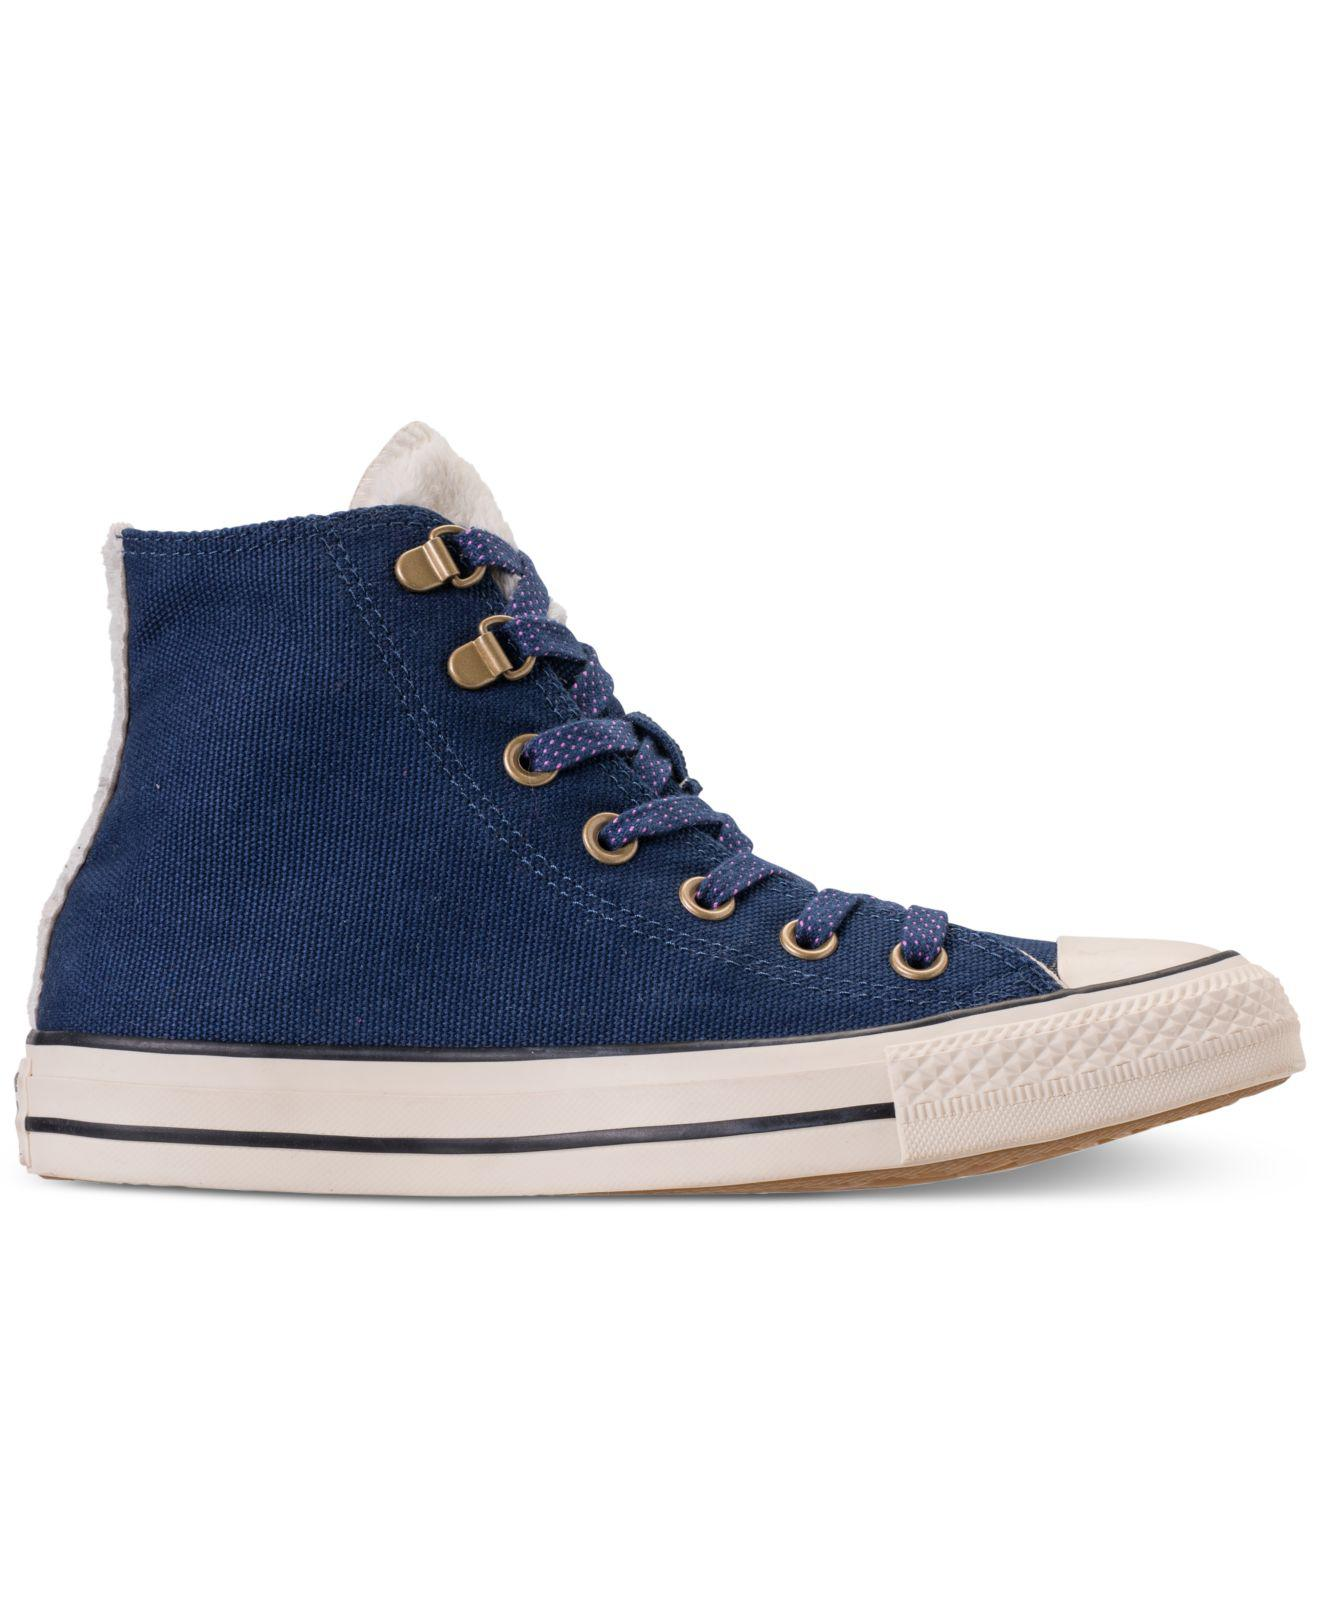 bd751889ac539b Lyst - Converse Chuck Taylor All Star Furst Love High Top Casual Sneakers  From Finish Line in Blue - Save 2%